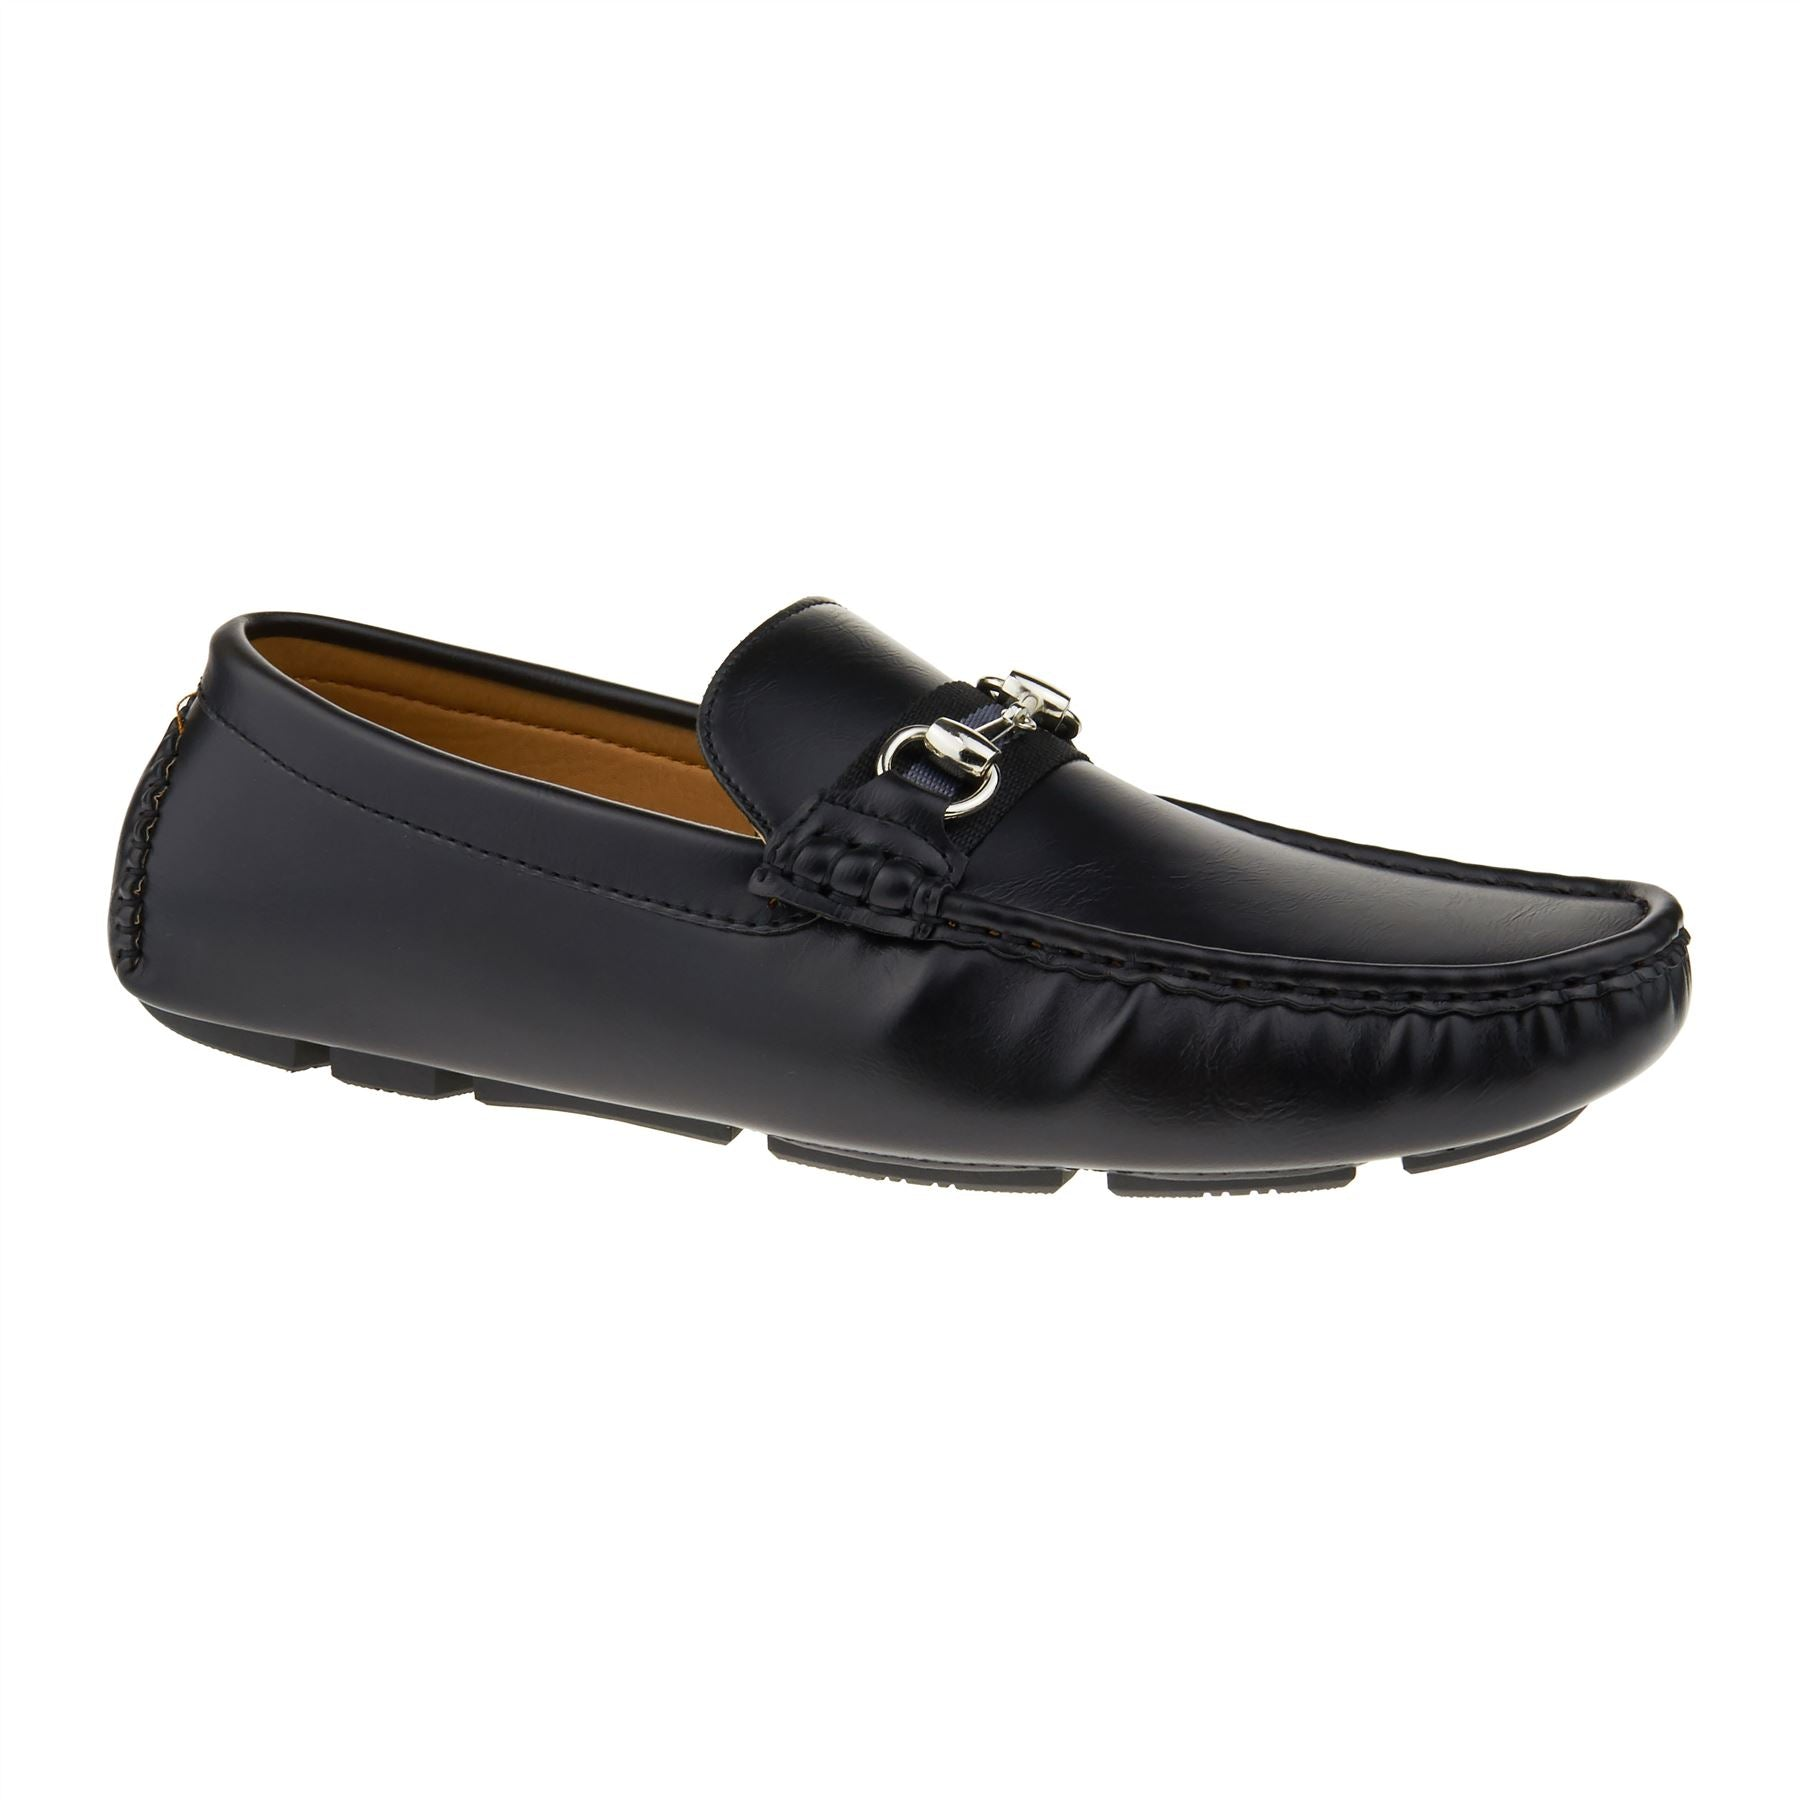 Black Horsebit Driving Shoes